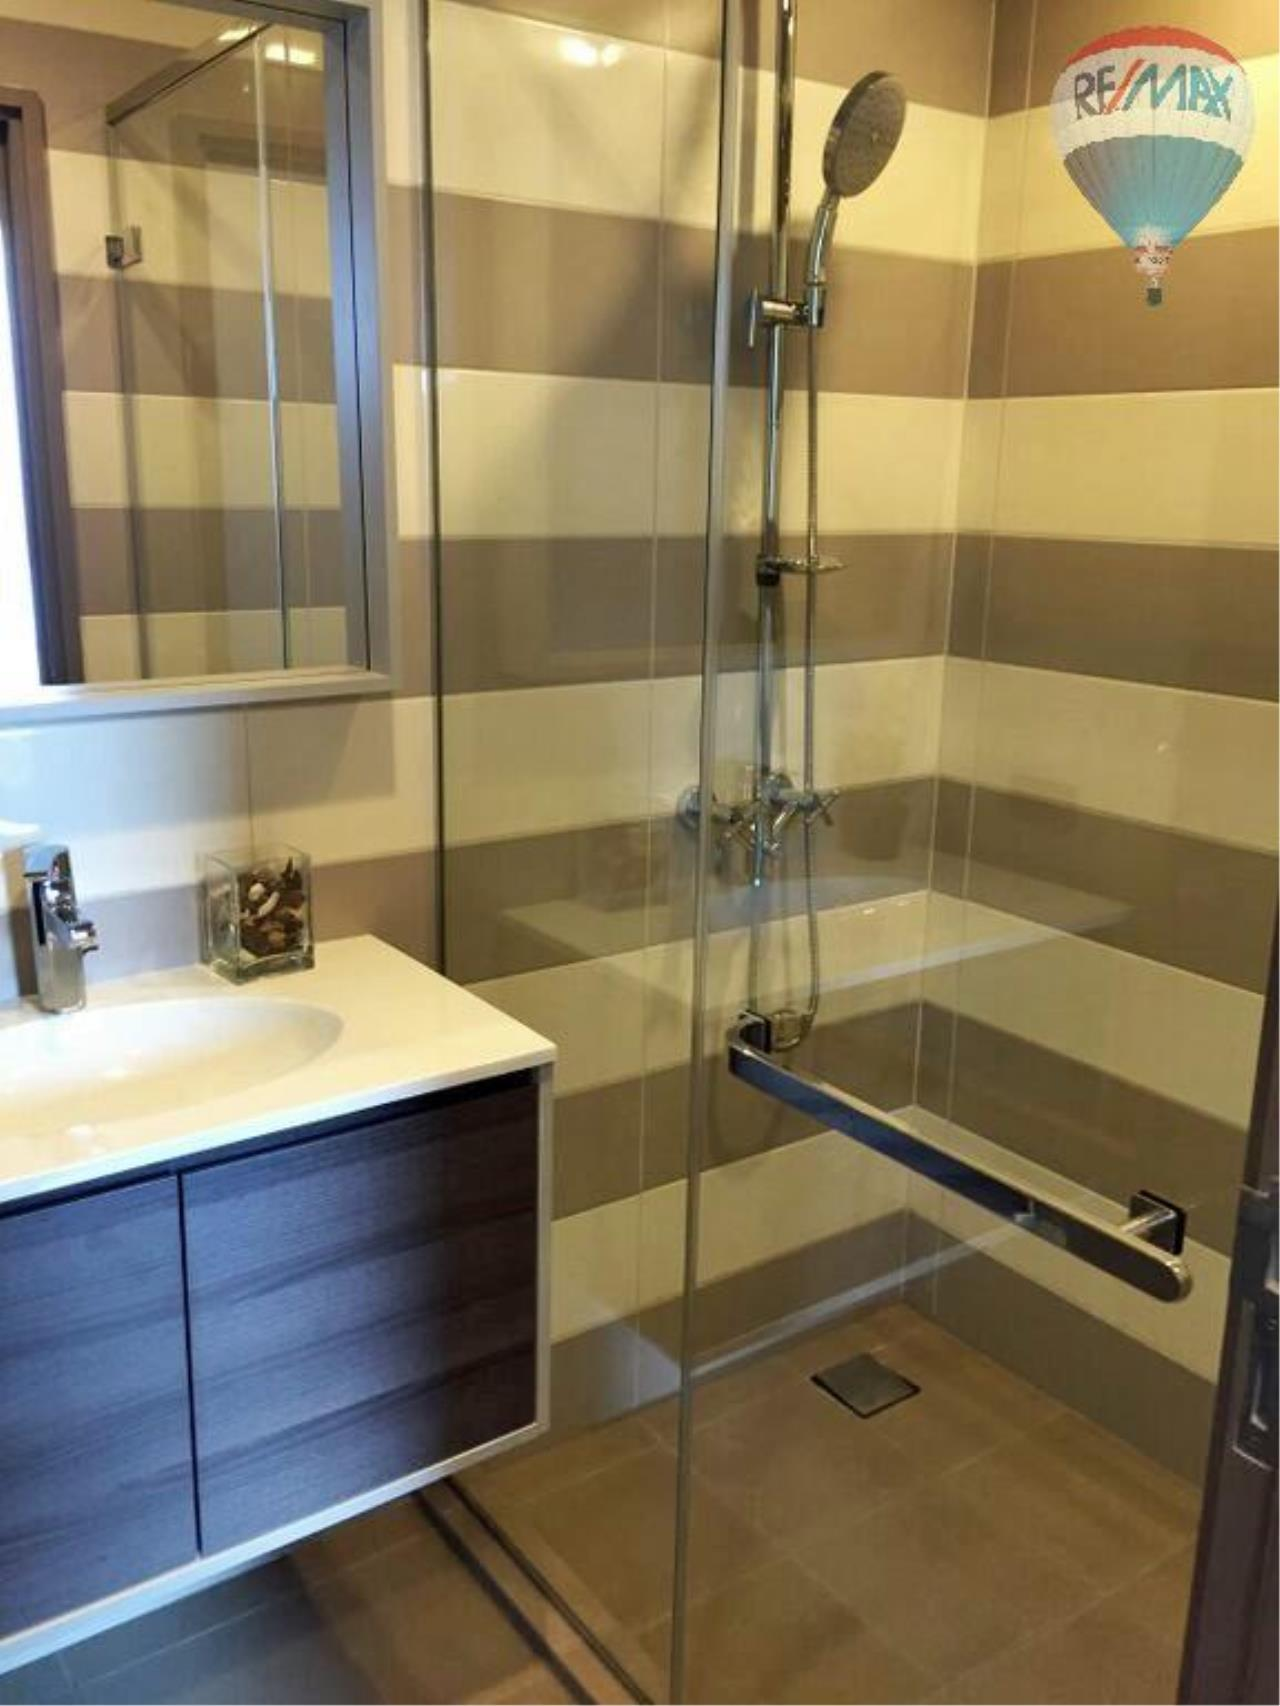 RE/MAX Properties Agency's Condominium for rent at Ekamai 8